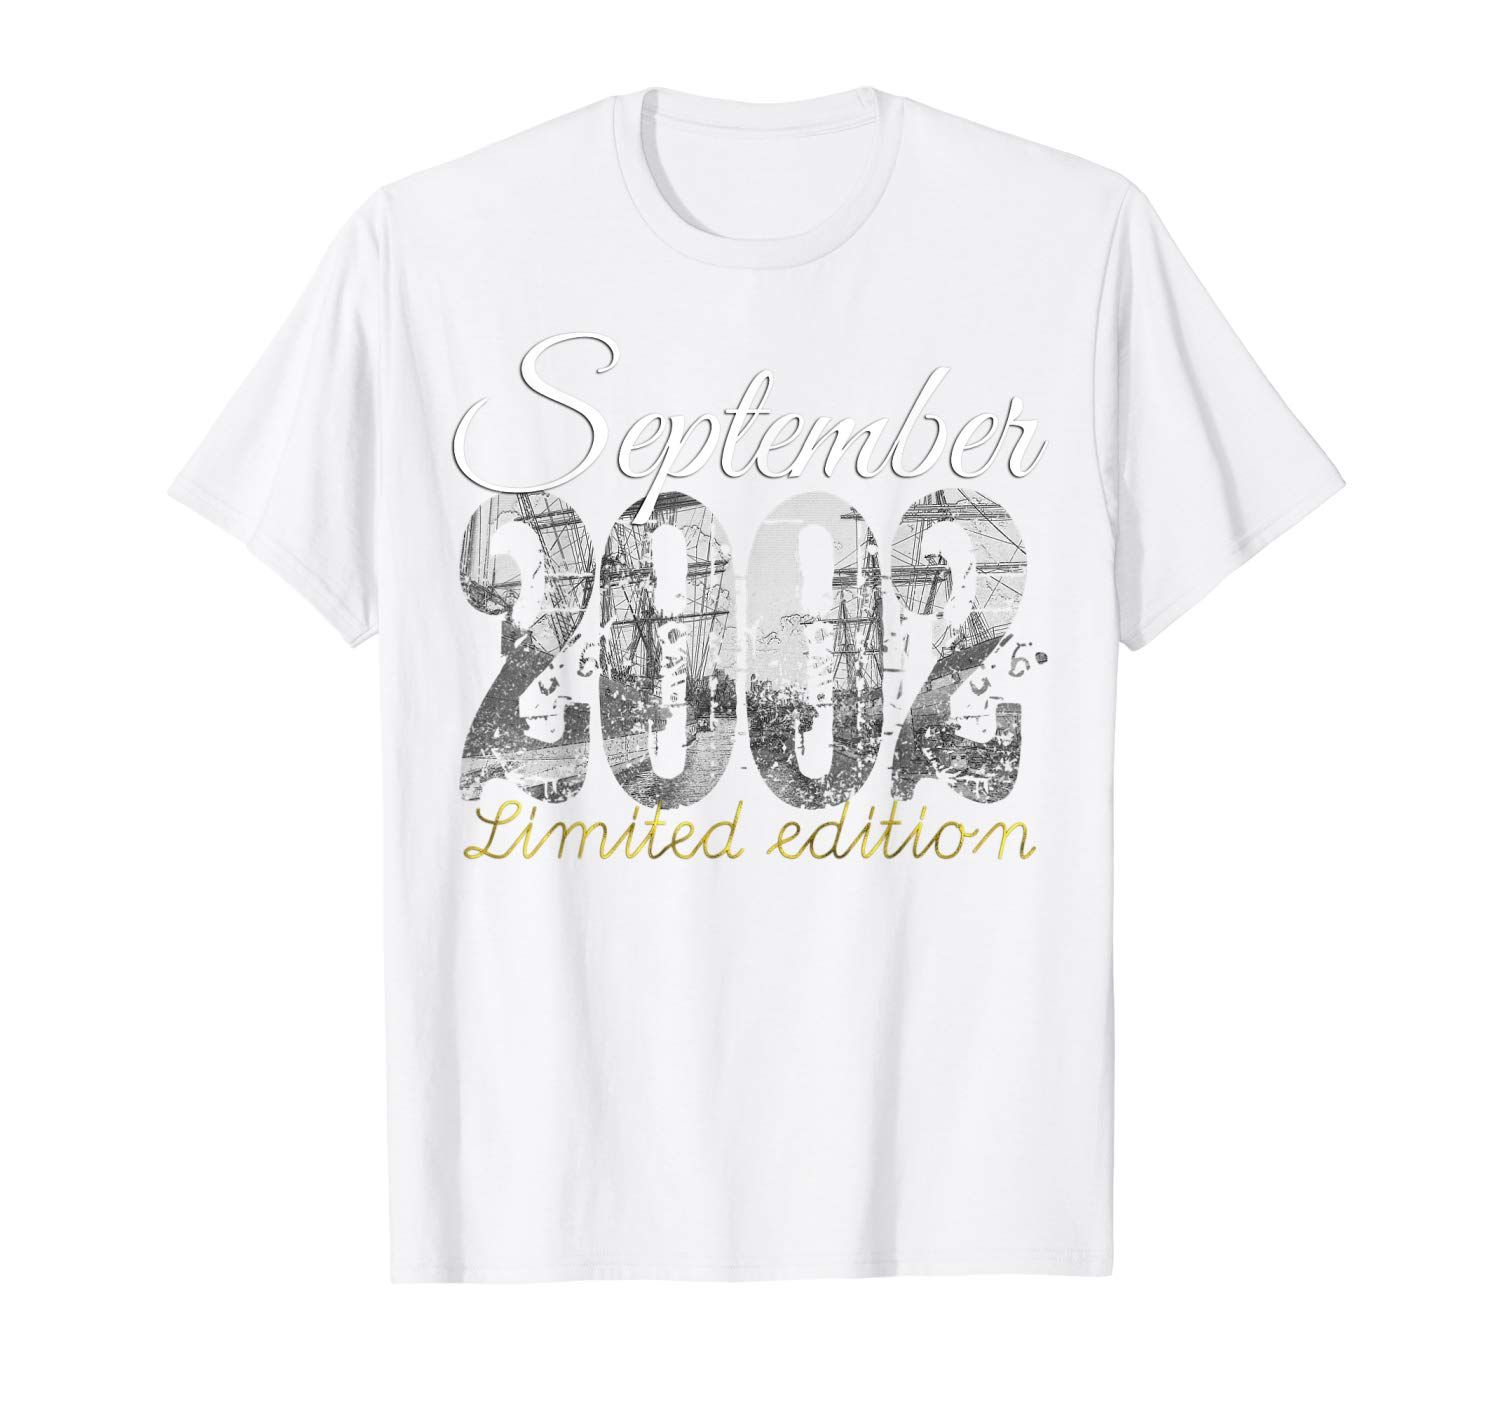 September 2002 Tee 17 Year Old Shirt 2002 17th Birthday Gift T-Shirt #17thbirthday